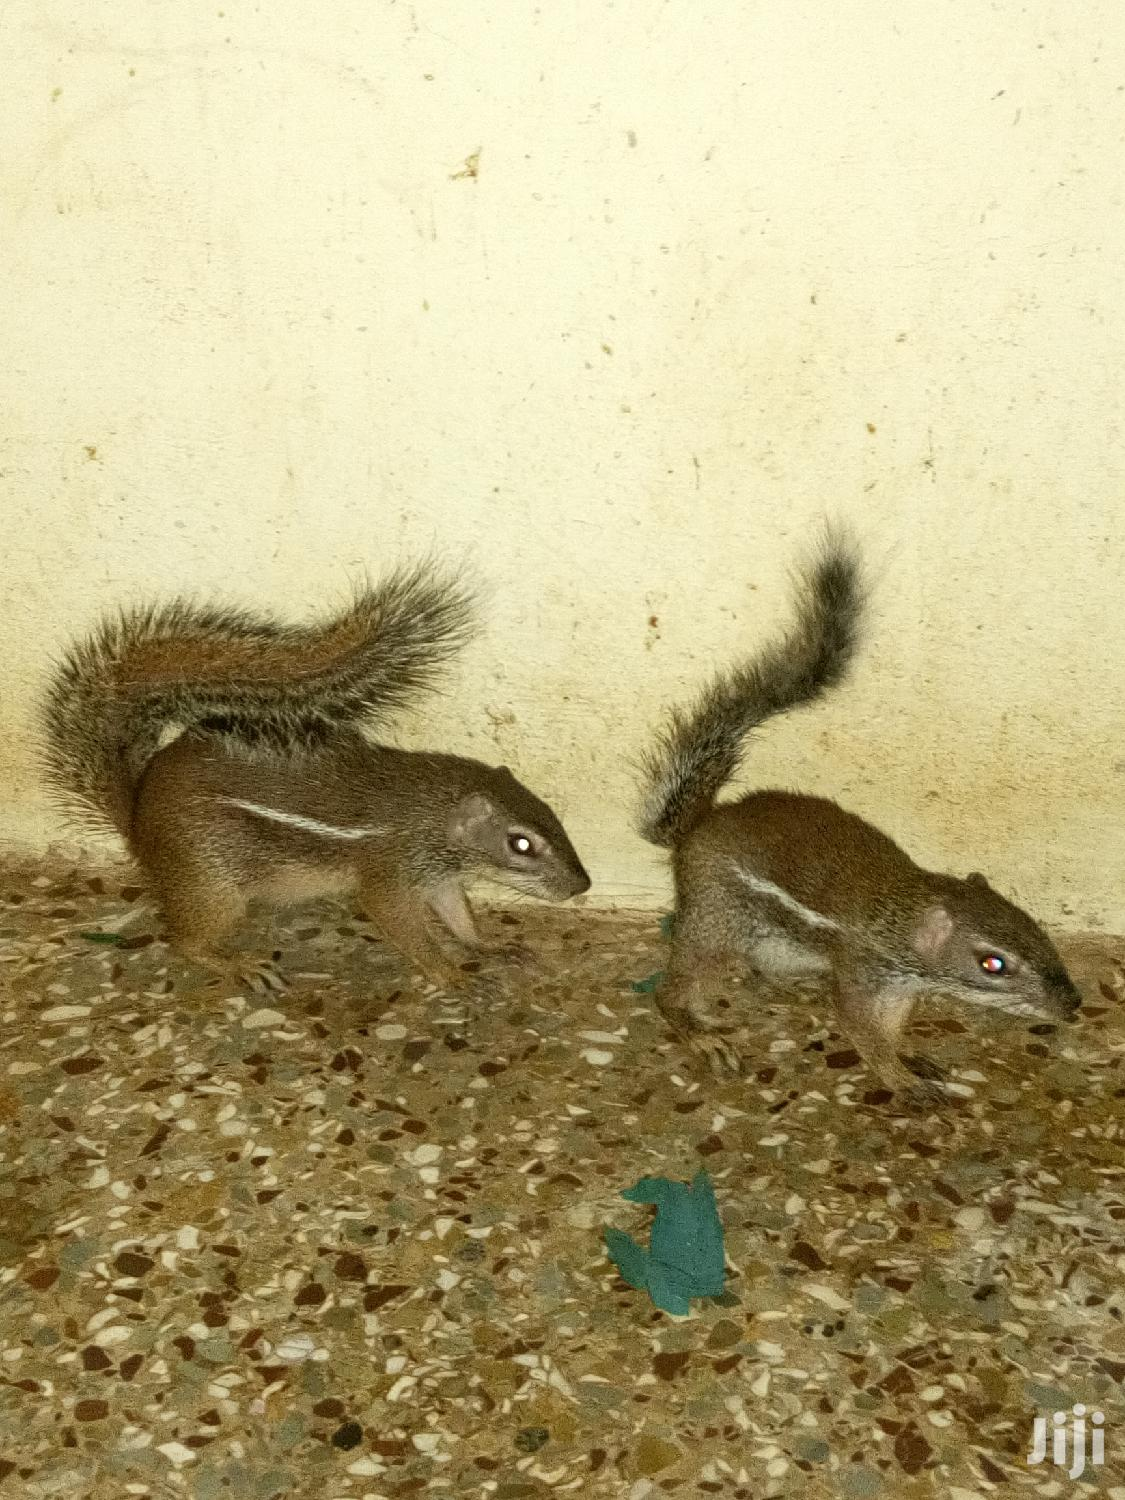 Archive: African Giant Land Squirrel